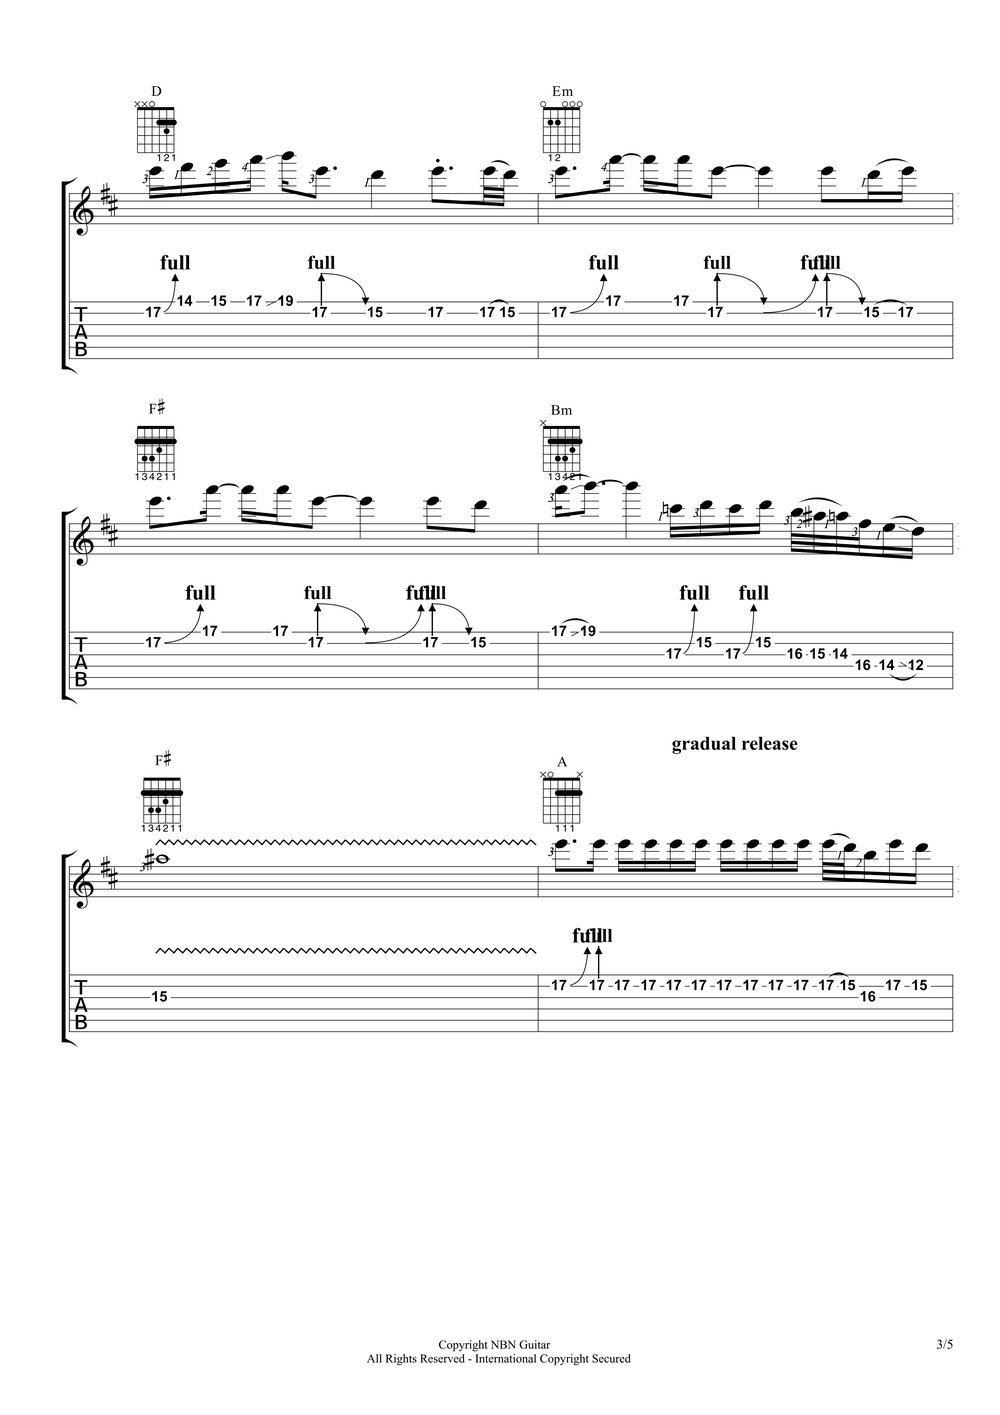 Hotel California Solo Sheet Music & Tabs (Acoustic)-p3.jpg